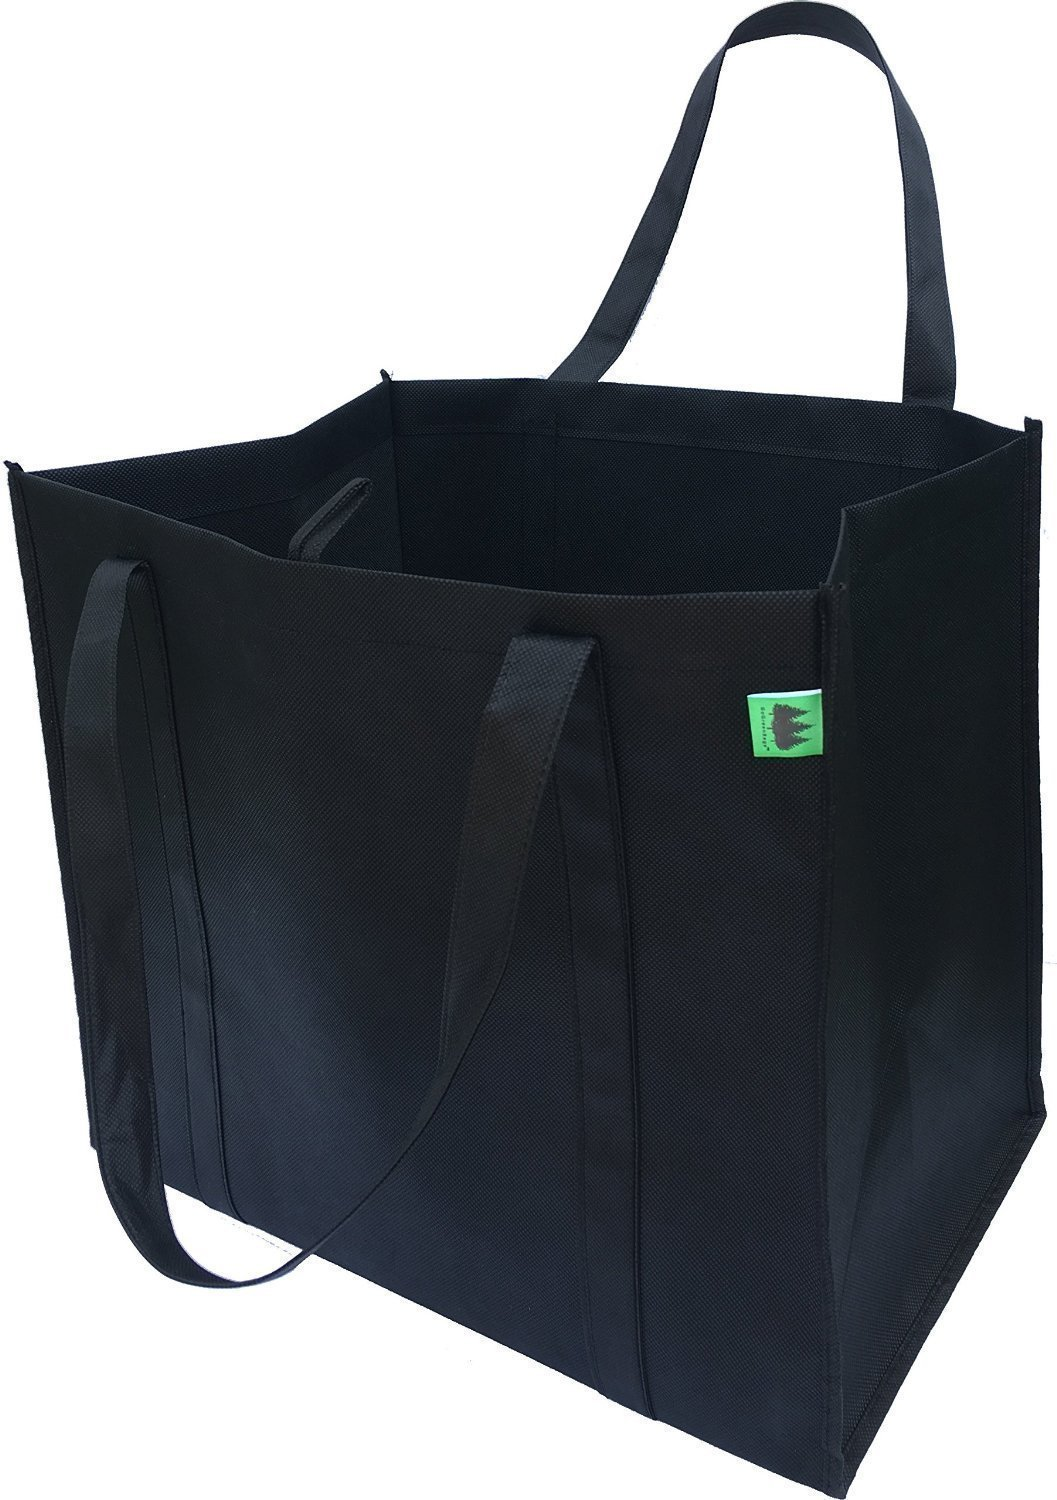 Reusable Grocery Bags (5 Pack, Black) - Hold 40+ lbs - Extra Large & Super Strong, Heavy Duty Shopping Bags - Grocery Tote Bag with Reinforced Handles & Thick Plastic Bottom for Strength GoGreenBags FBA_ggb001